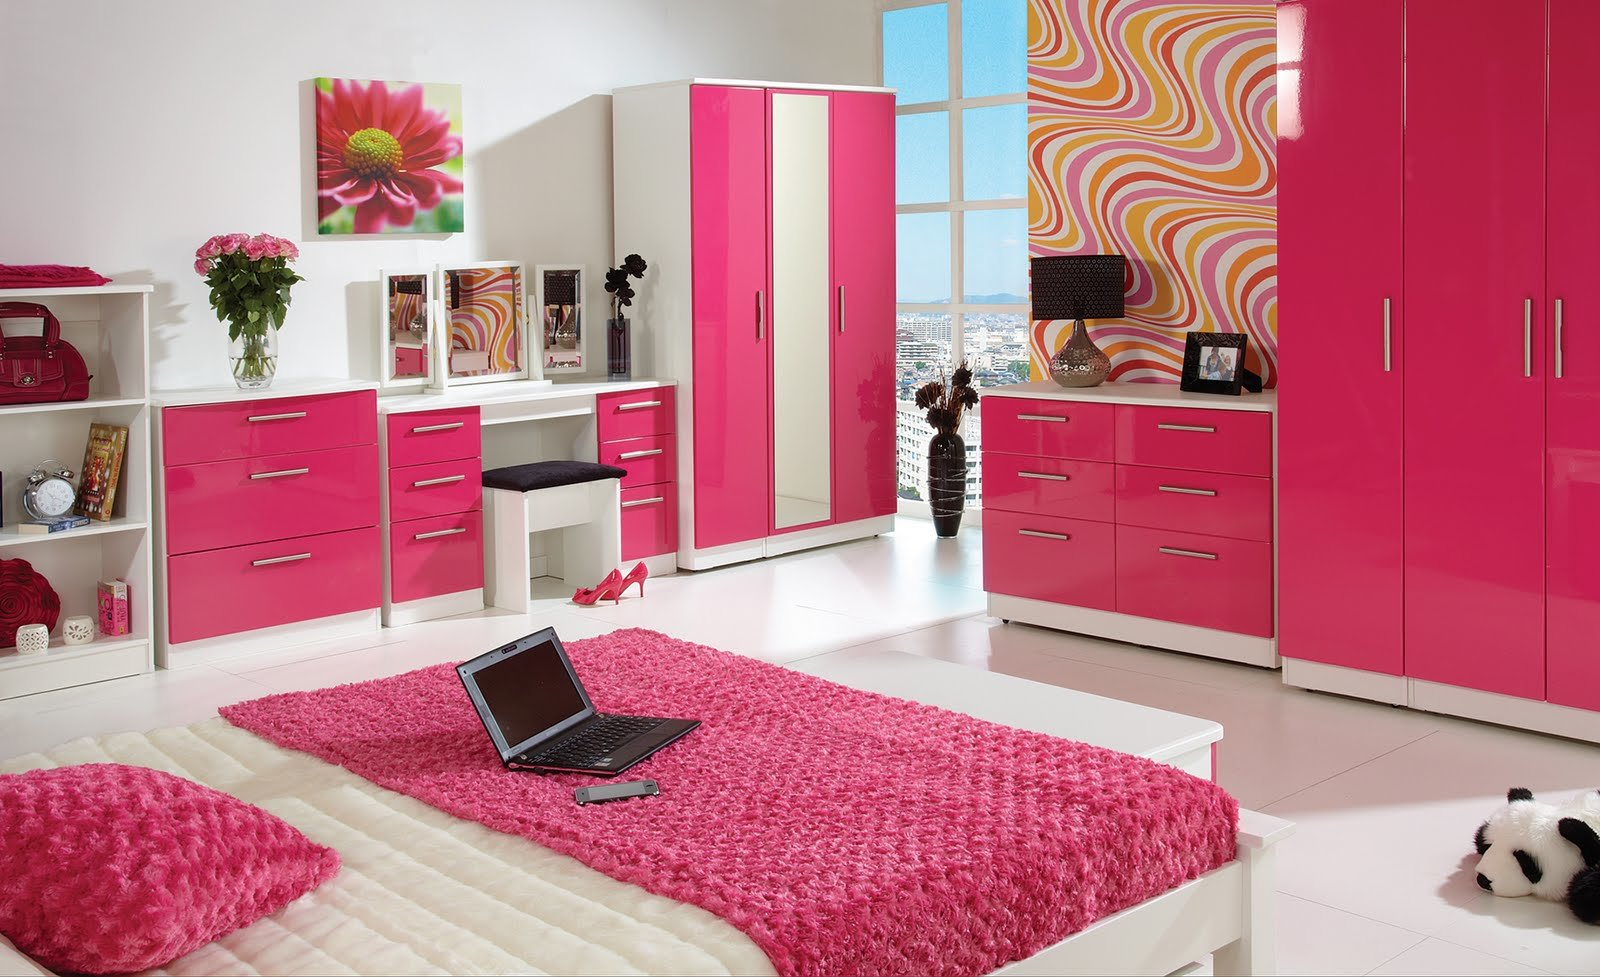 Best Home Furnishings From Furniture Store 247 Pink High Gloss With Pictures